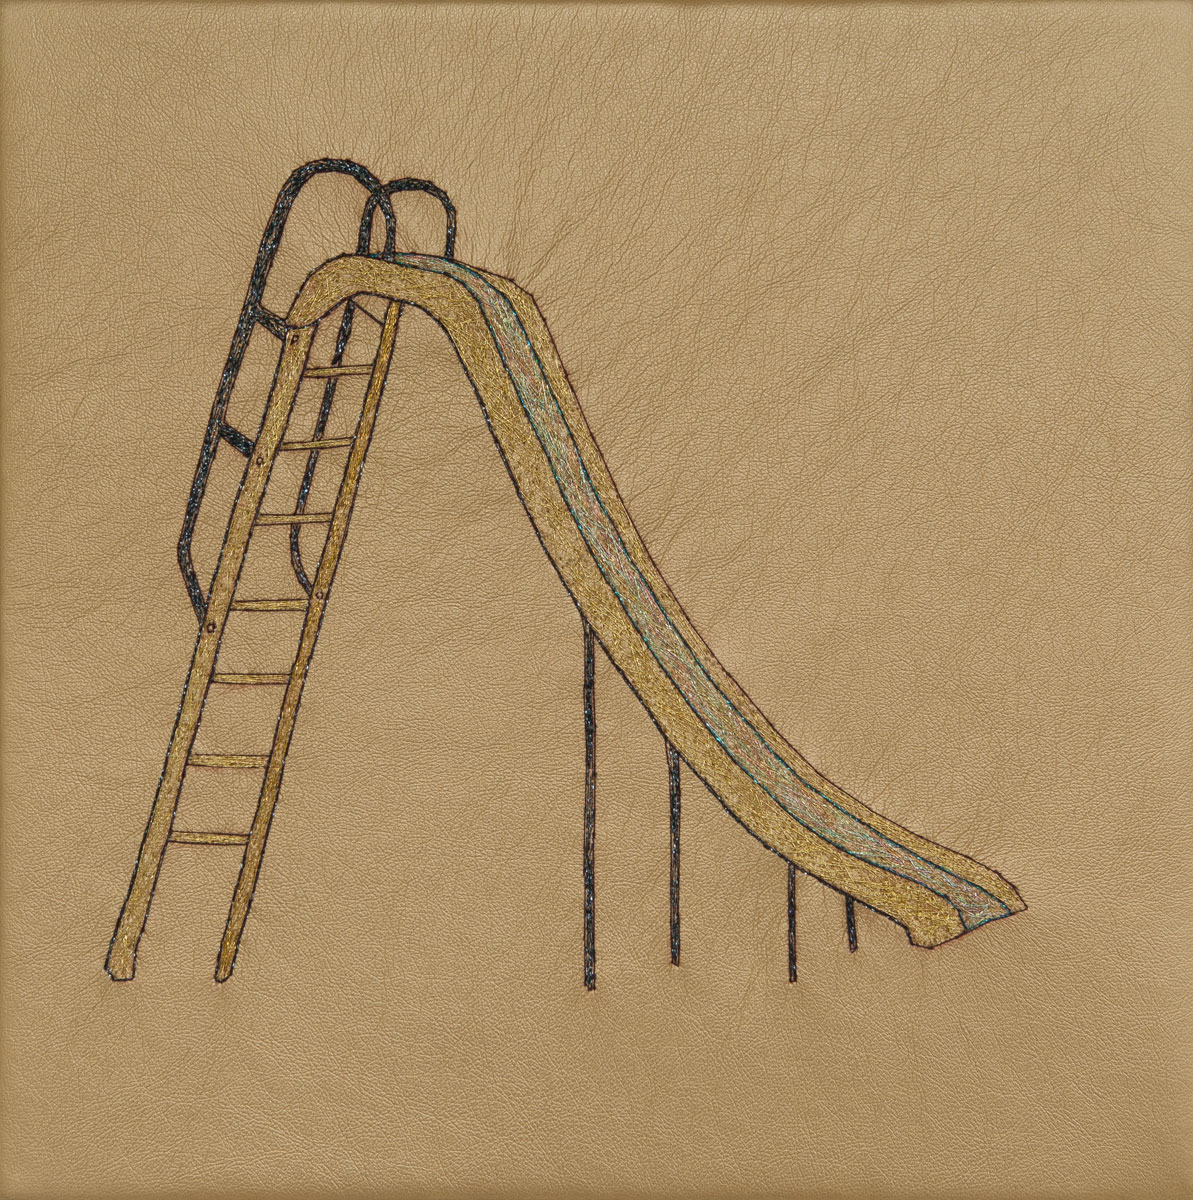 Slide, hand stitching on gold vinyl, 10in x 10in, 2013